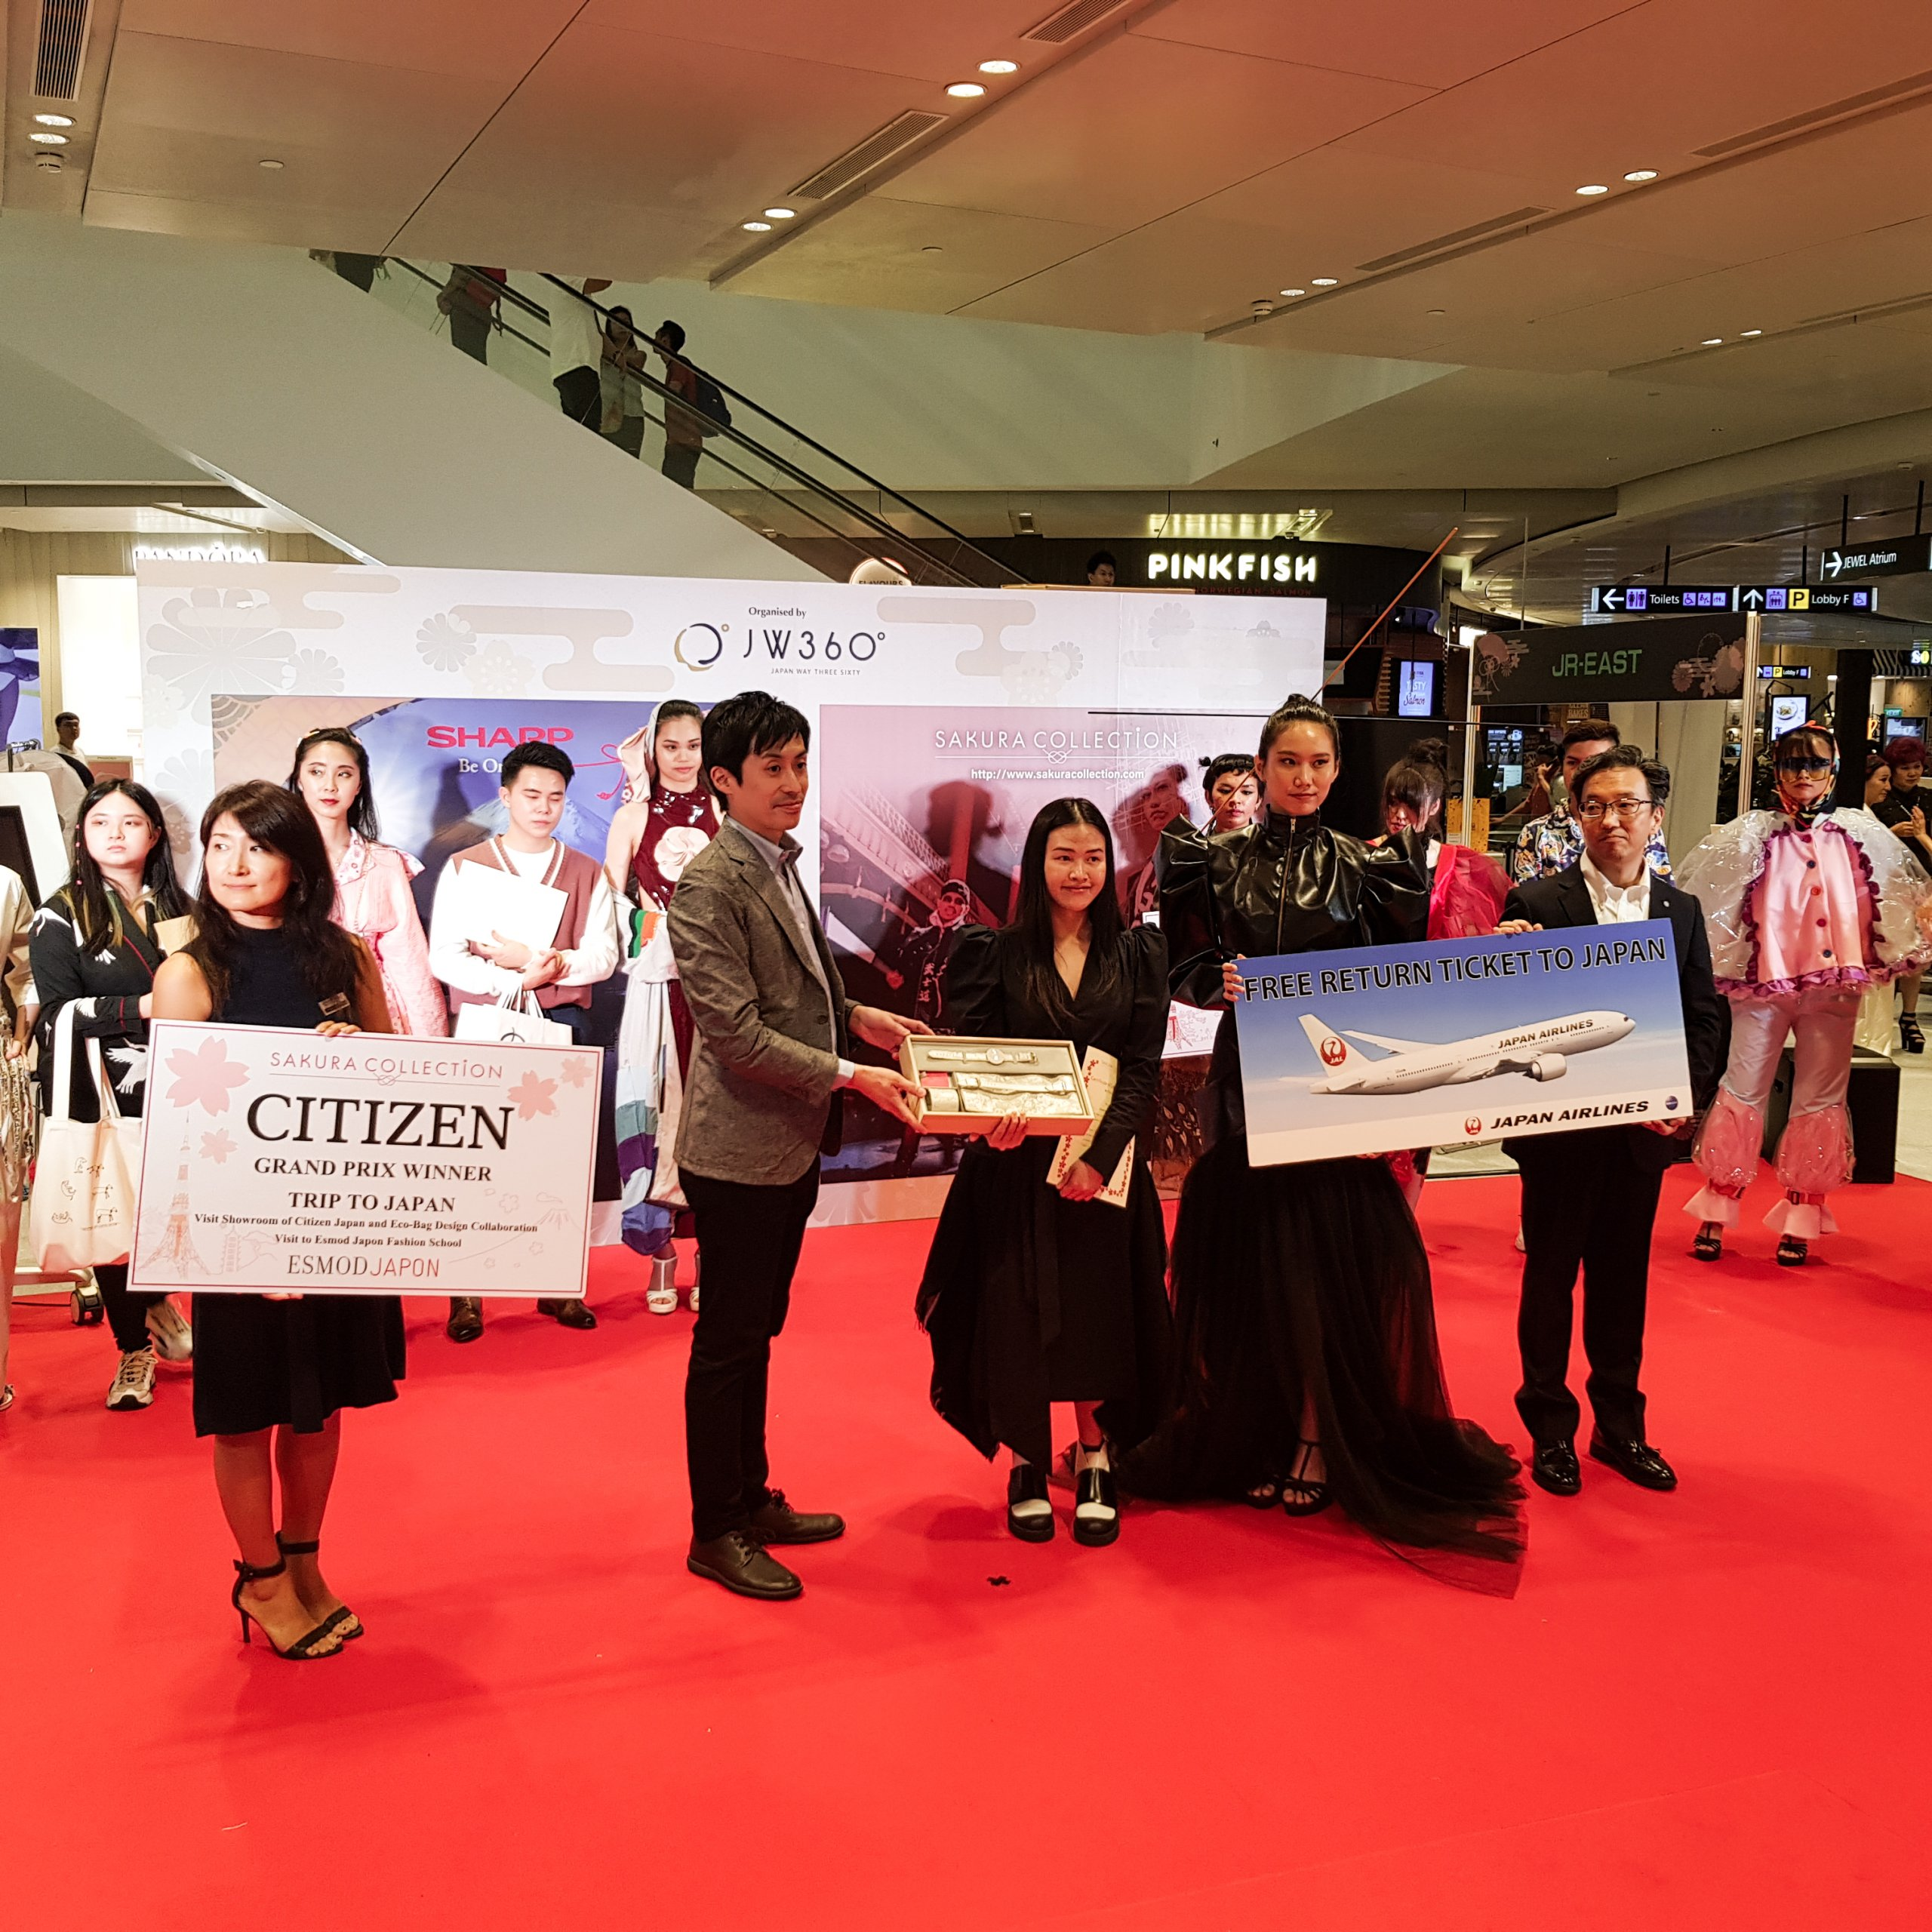 Sakura Collection Asia Student Awards 2020 Award ceremony Jewel Changi Airport International Presentation